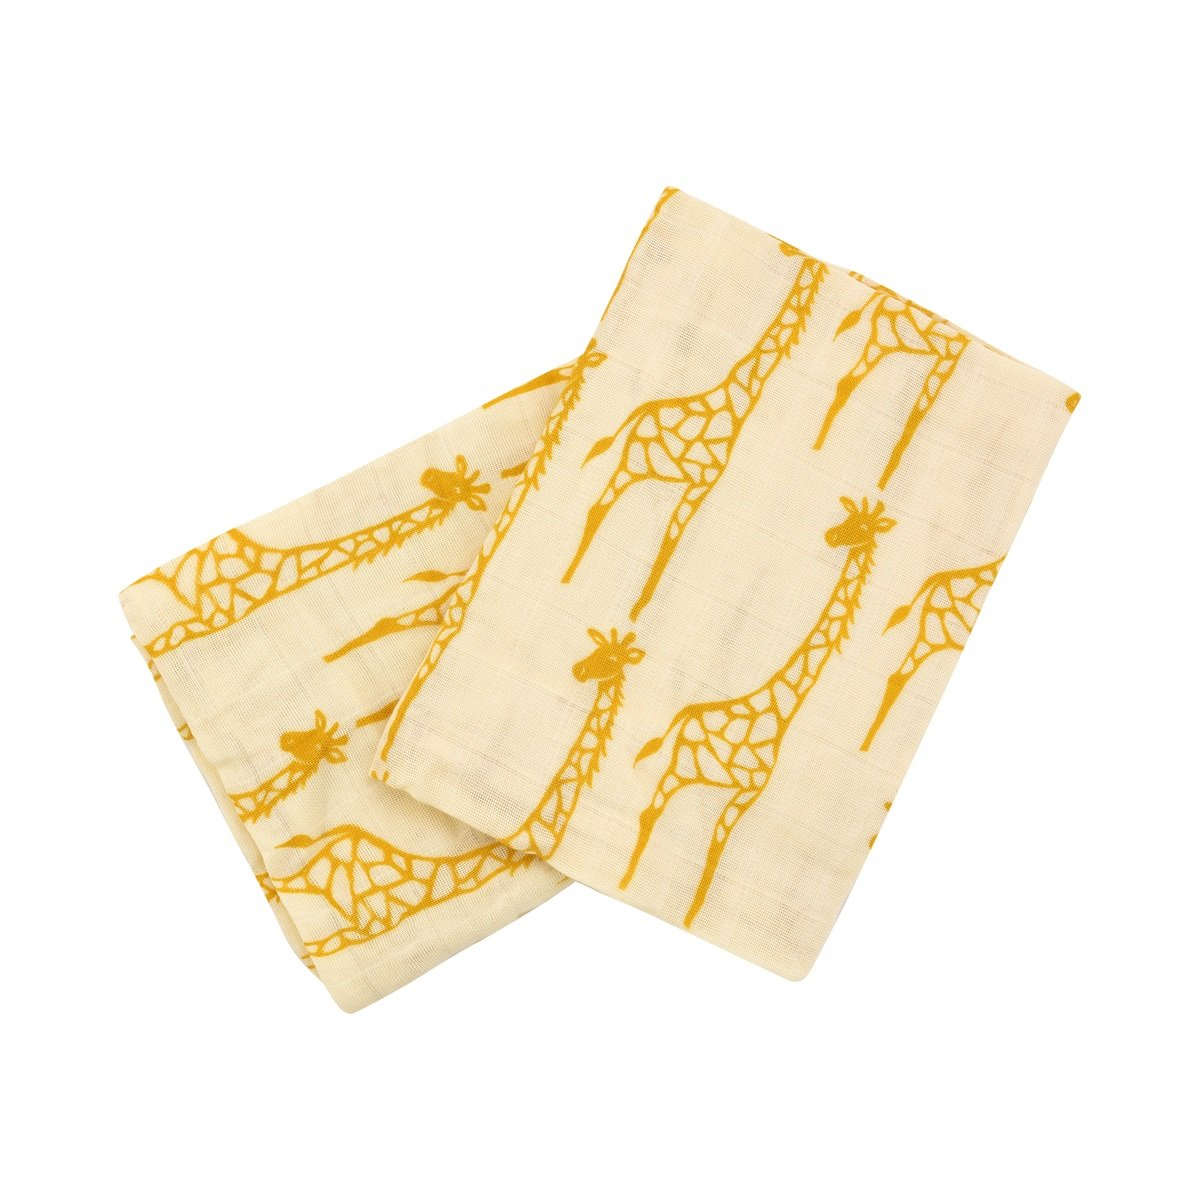 Milkbarn Organic Cotton Burp Cloths''Yellow Giraffe'' - Set of Two by MilkBarn